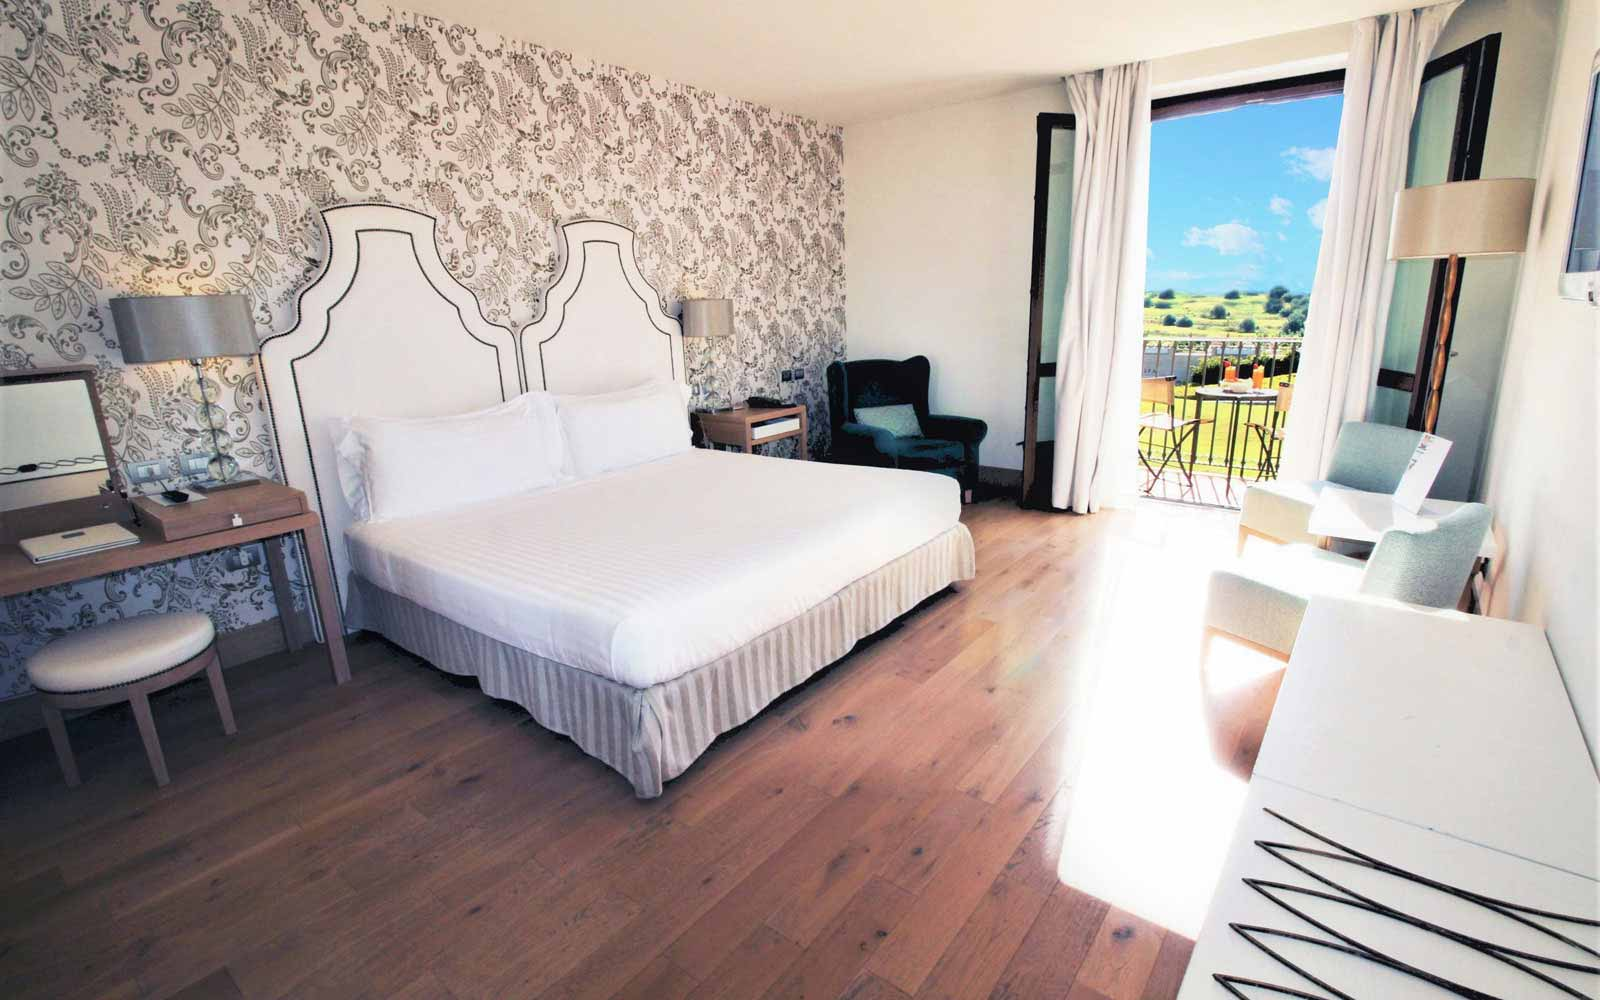 Deluxe with balcony room at Donnafugata Golf Resort & Spa